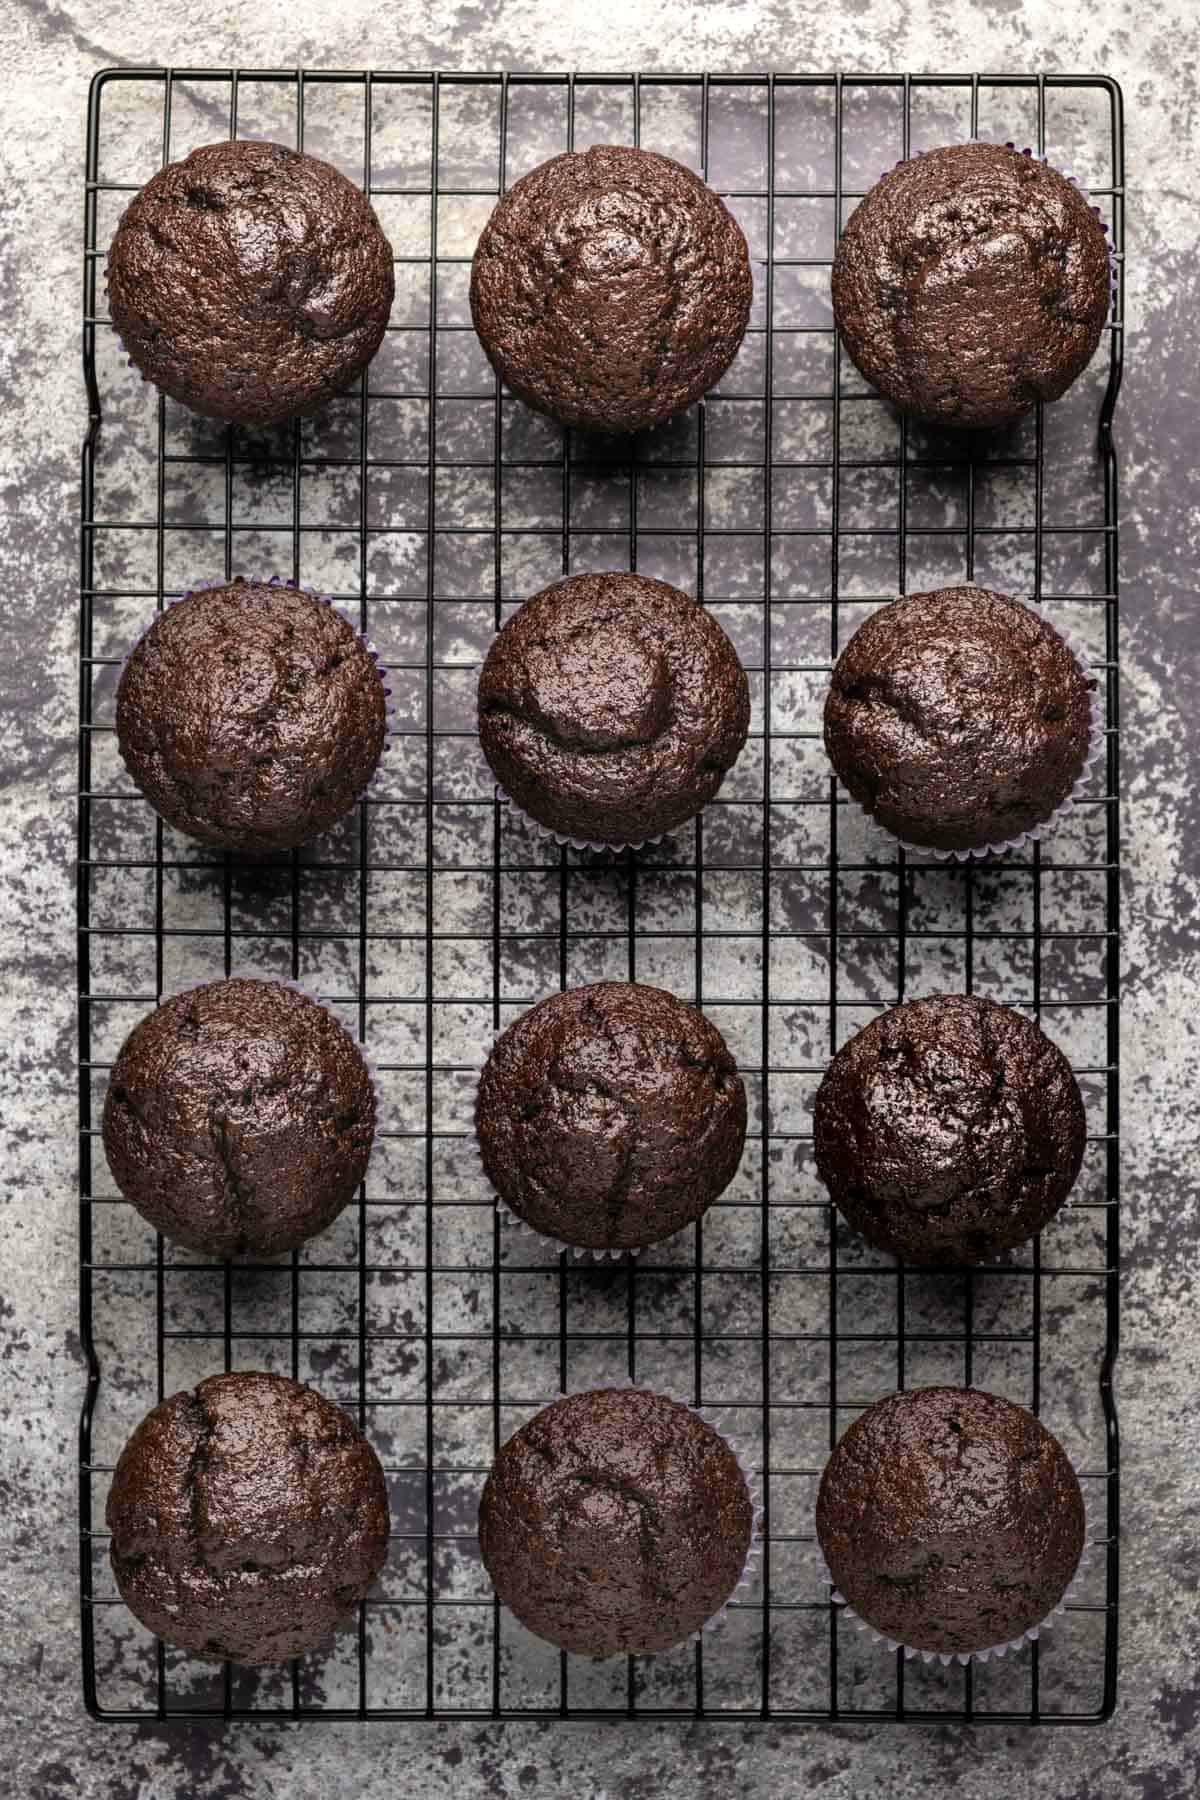 Freshly baked chocolate cupcakes on a wire cooling rack.